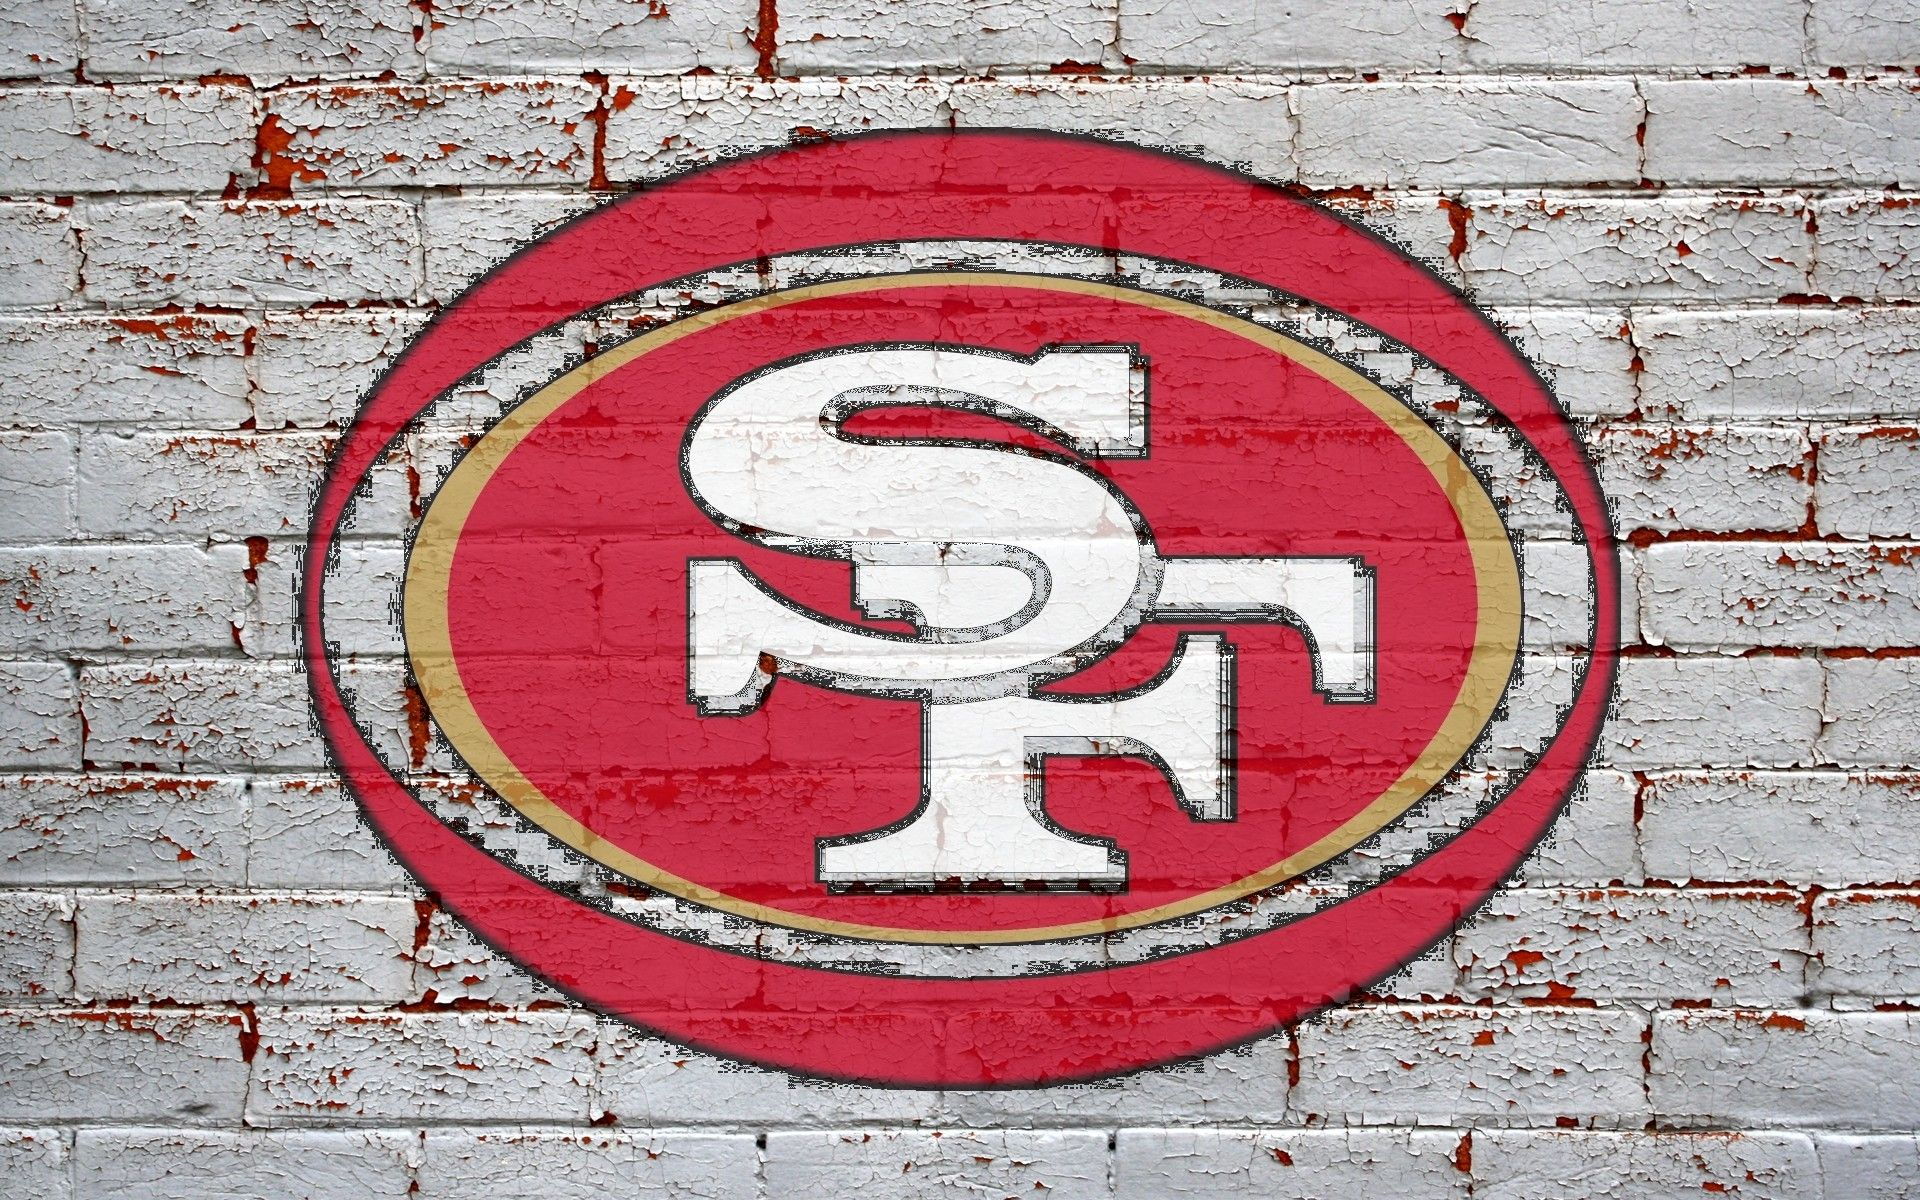 San Francisco 49ers Wallpapers Hd For Pc #4988 Wallpaper | Sportsvivo.Com